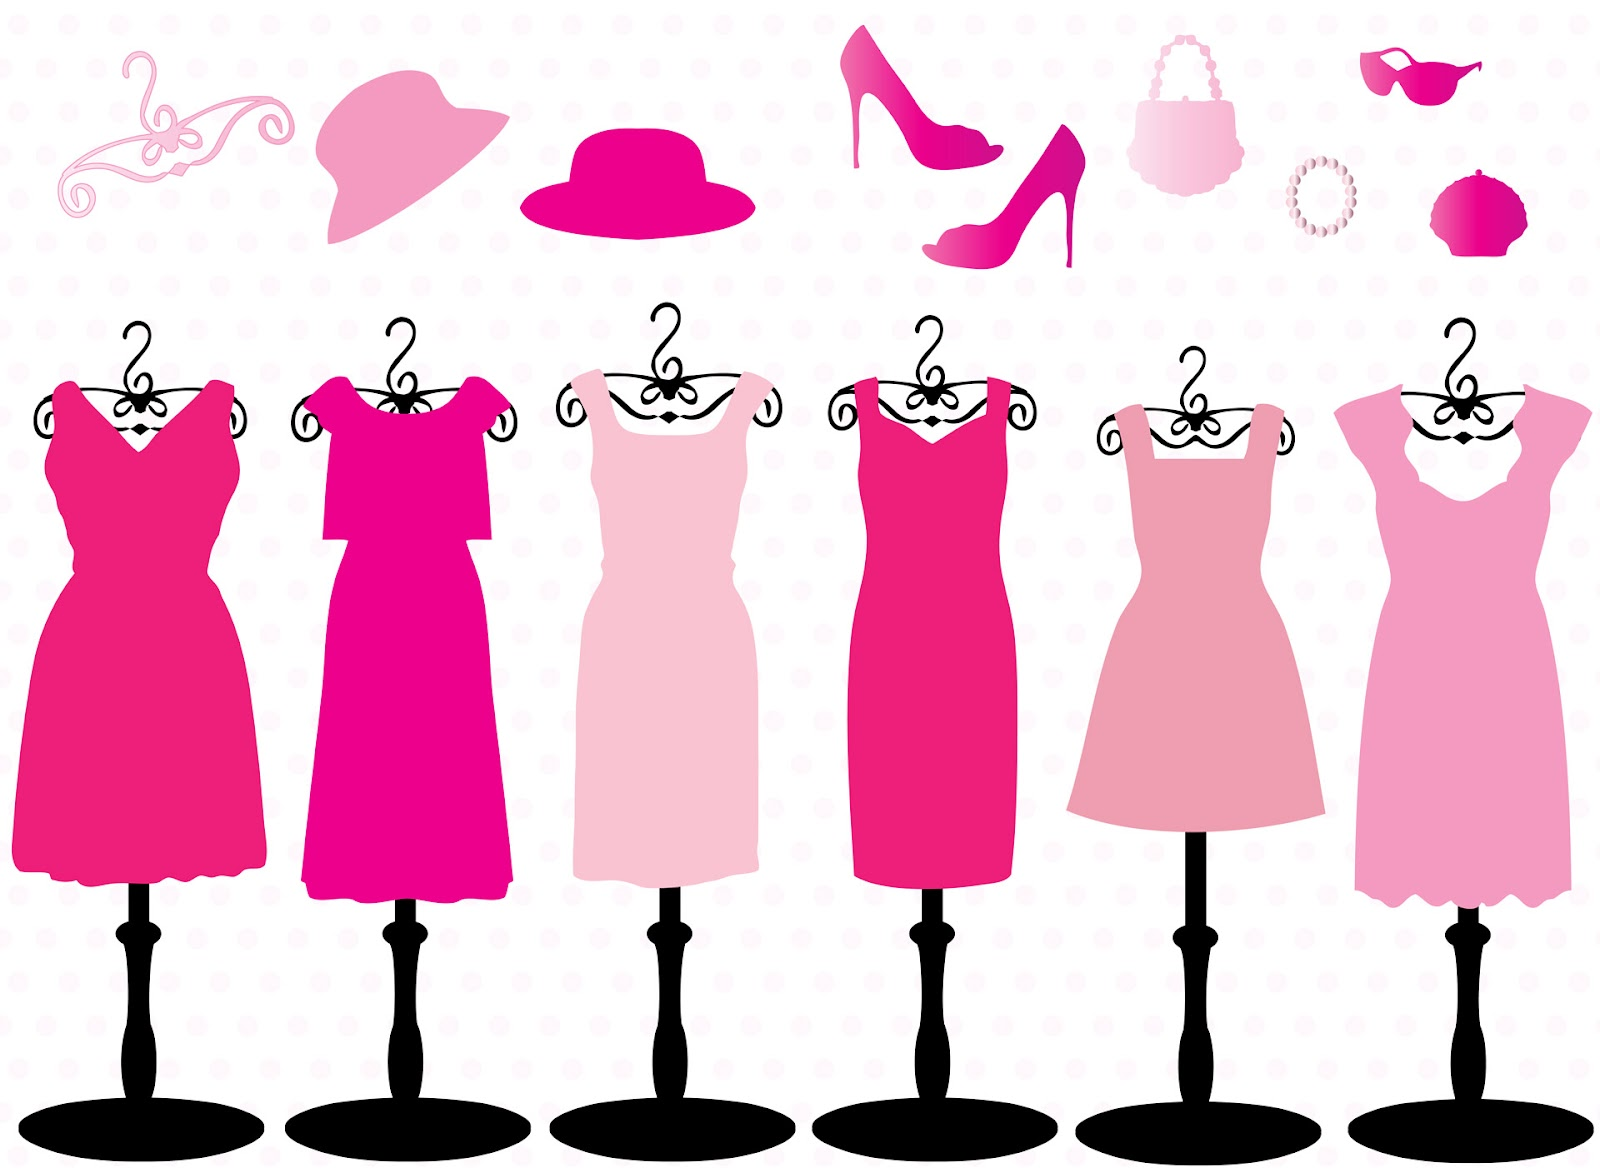 pink-dresses-and-accessories.jpg